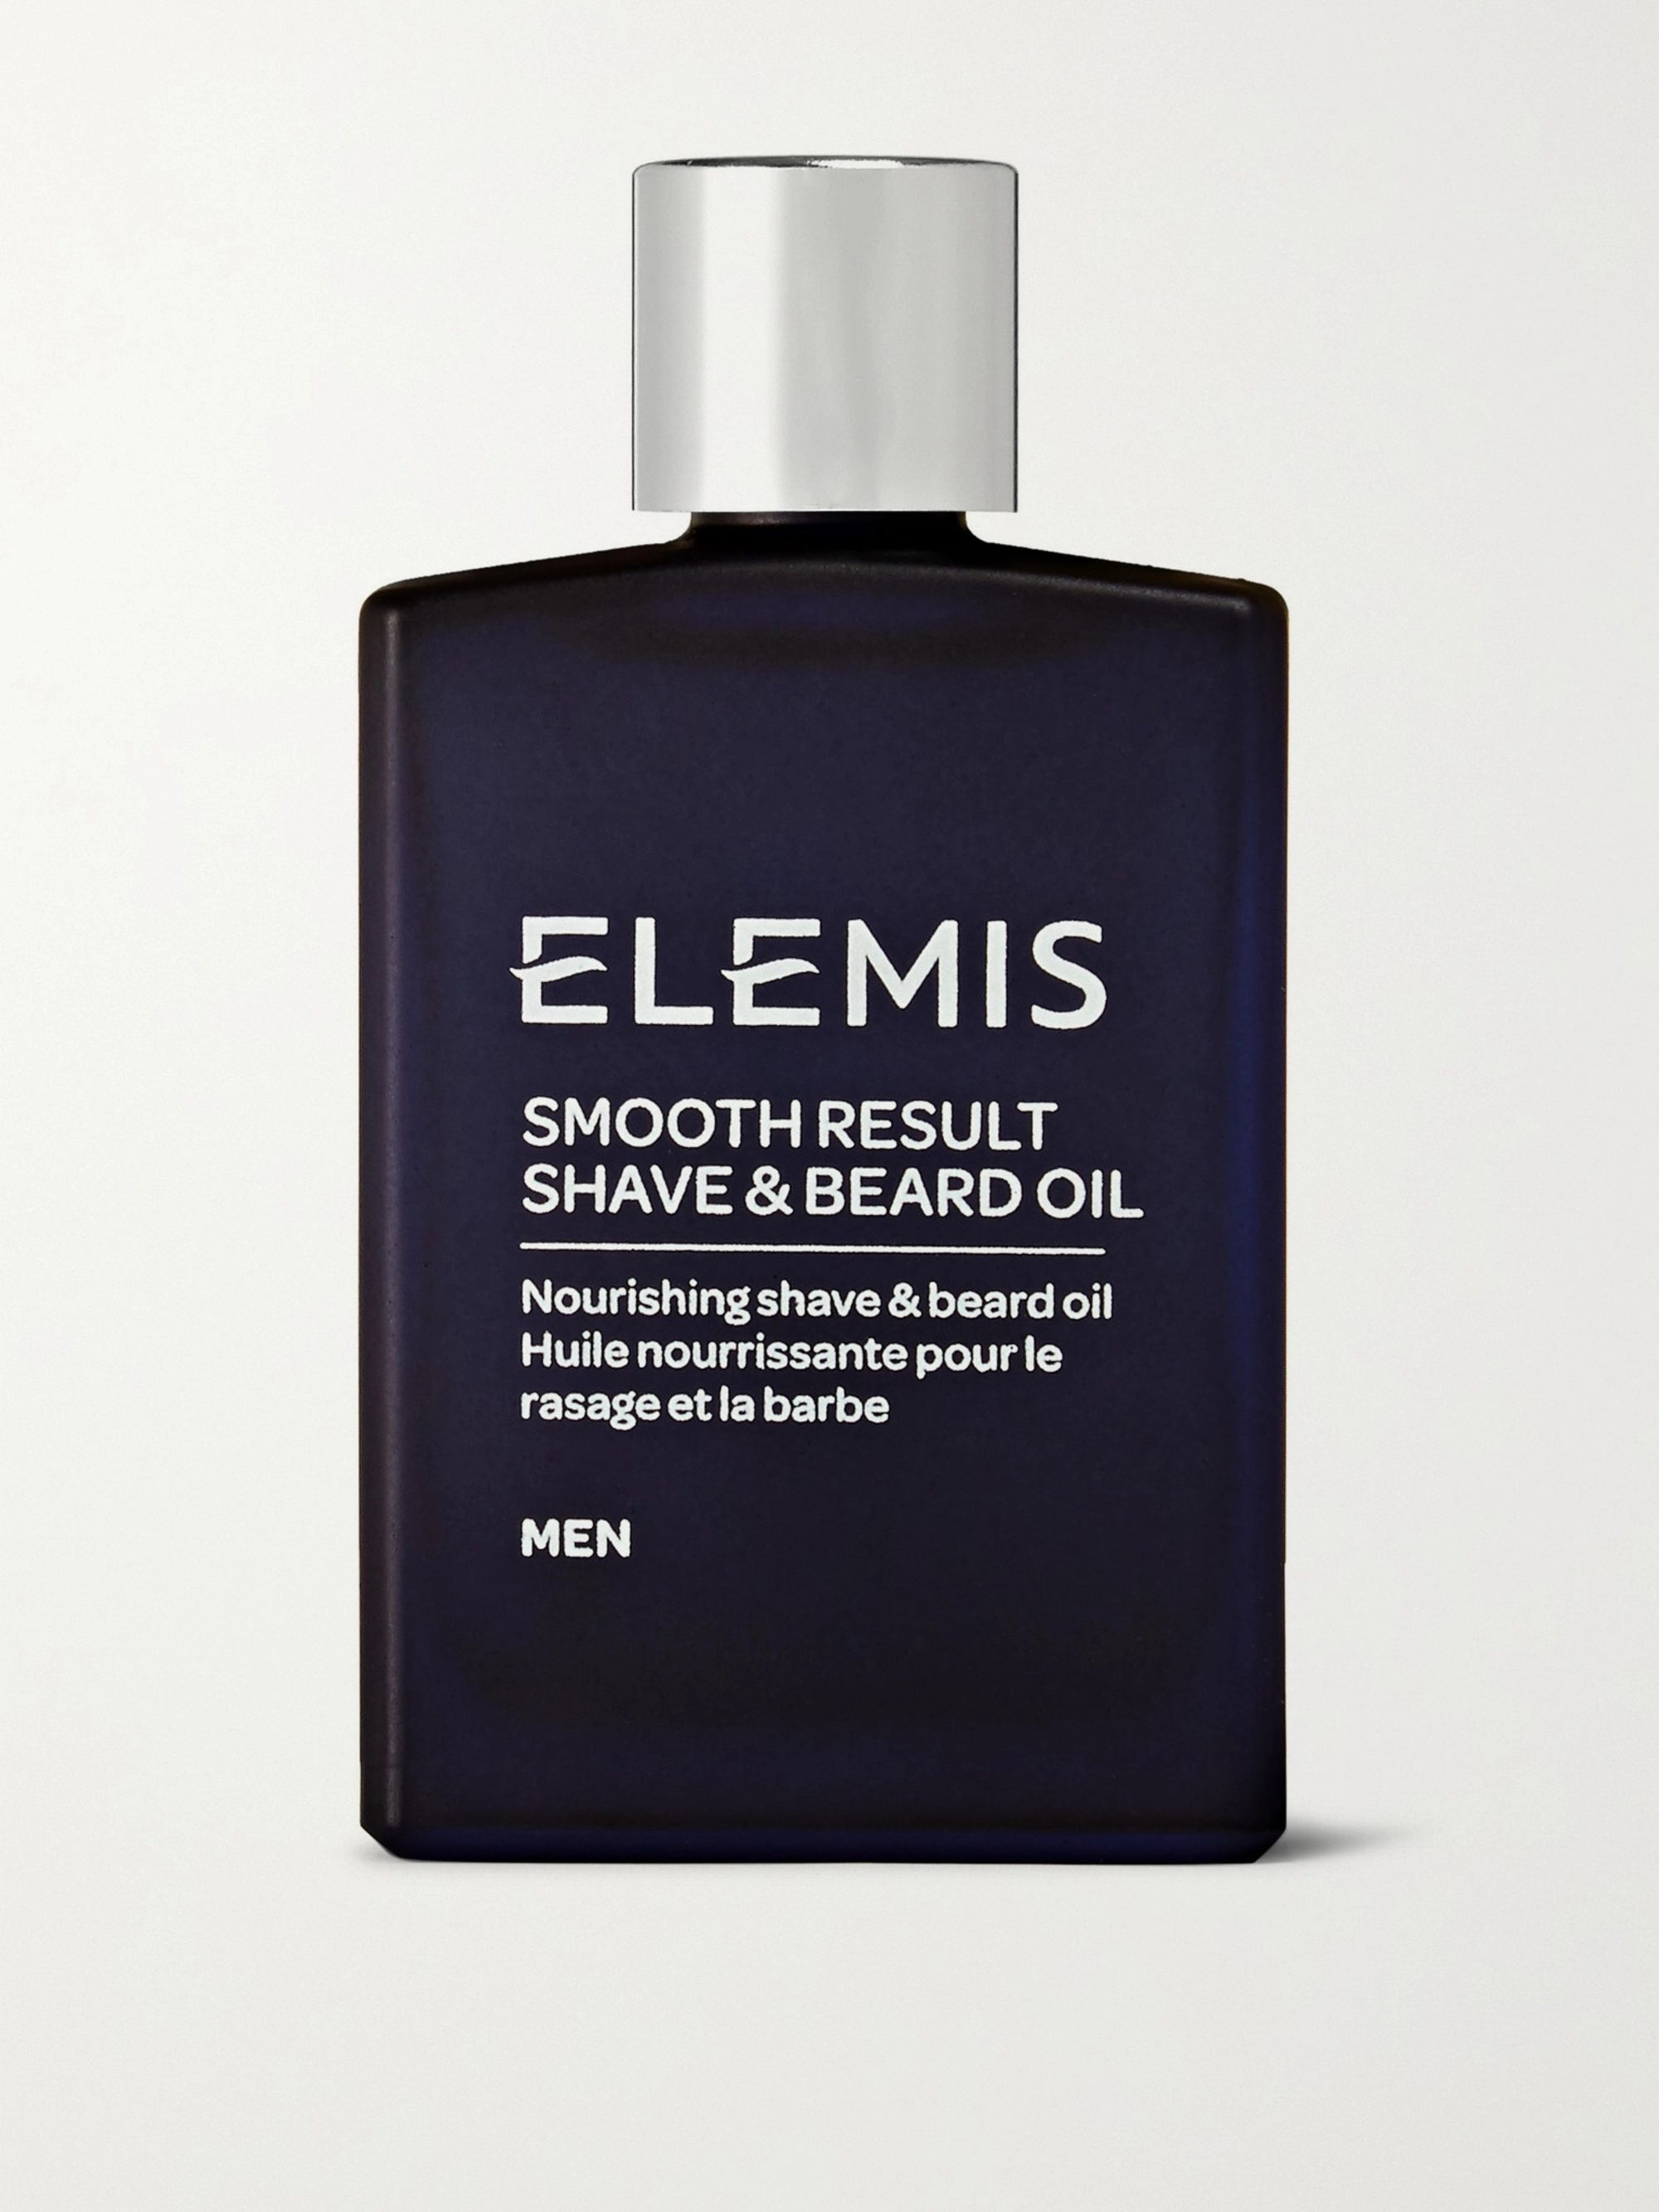 Elemis Smooth Result Shave and Beard Oil, 30ml